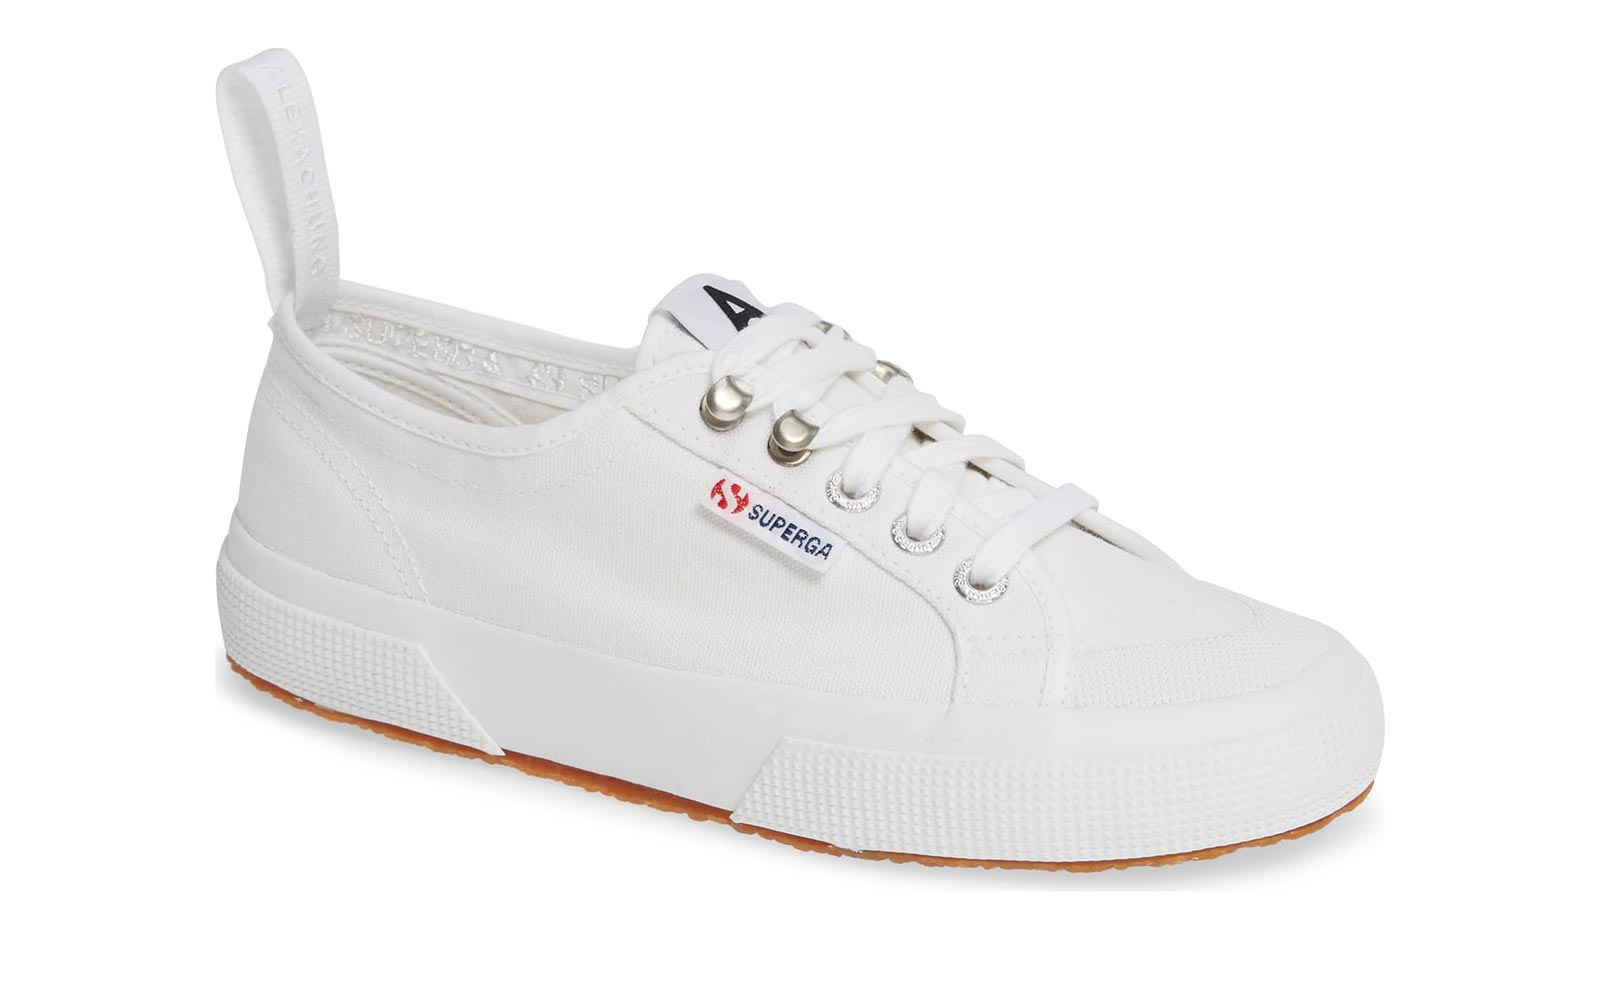 b98f11a7507a43 17 White Sneakers for Women That Go With Everything